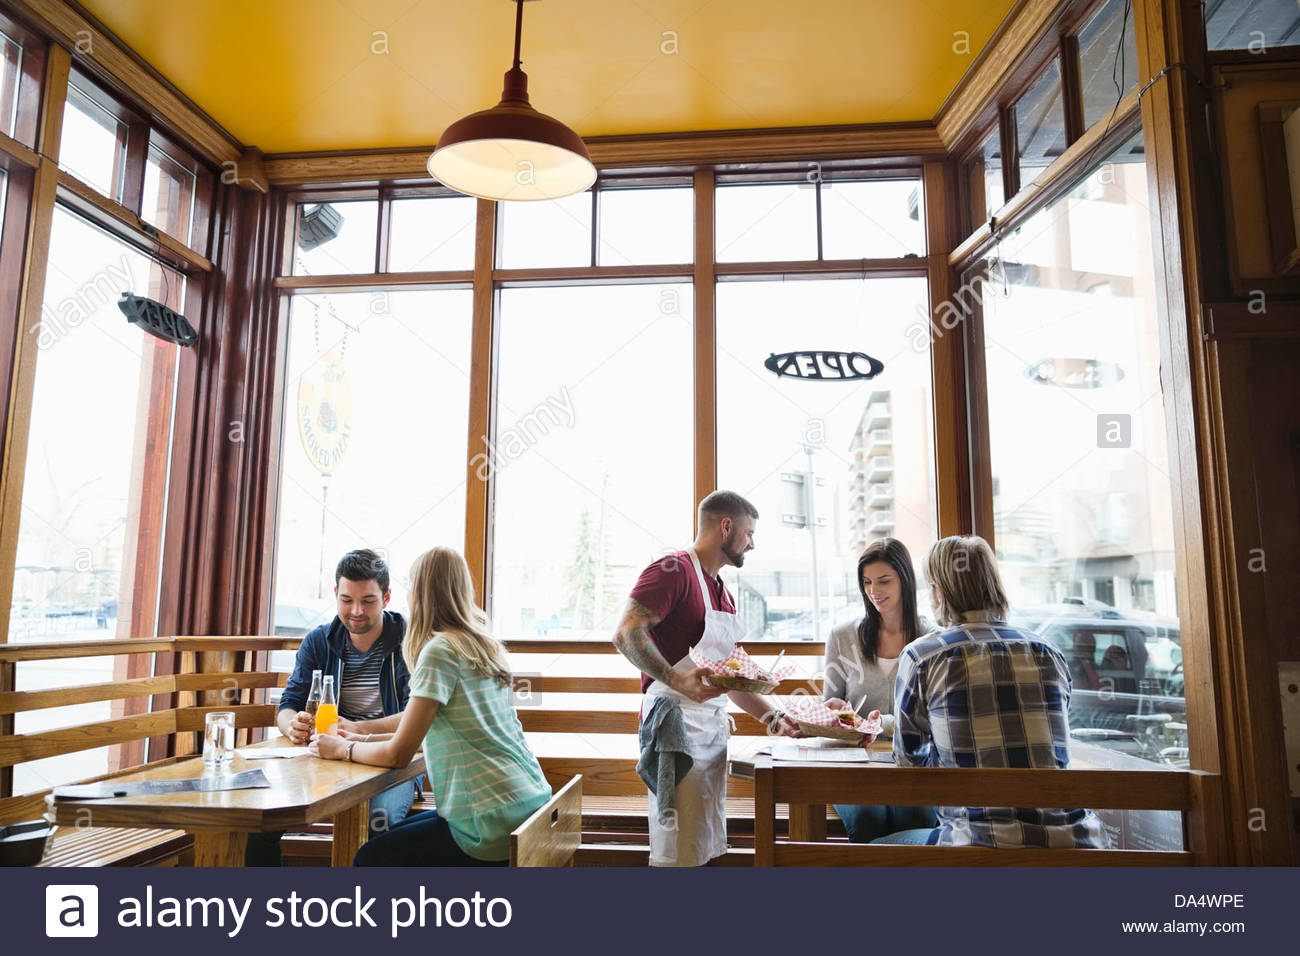 Homme deli owner de servir des aliments aux clients Photo Stock